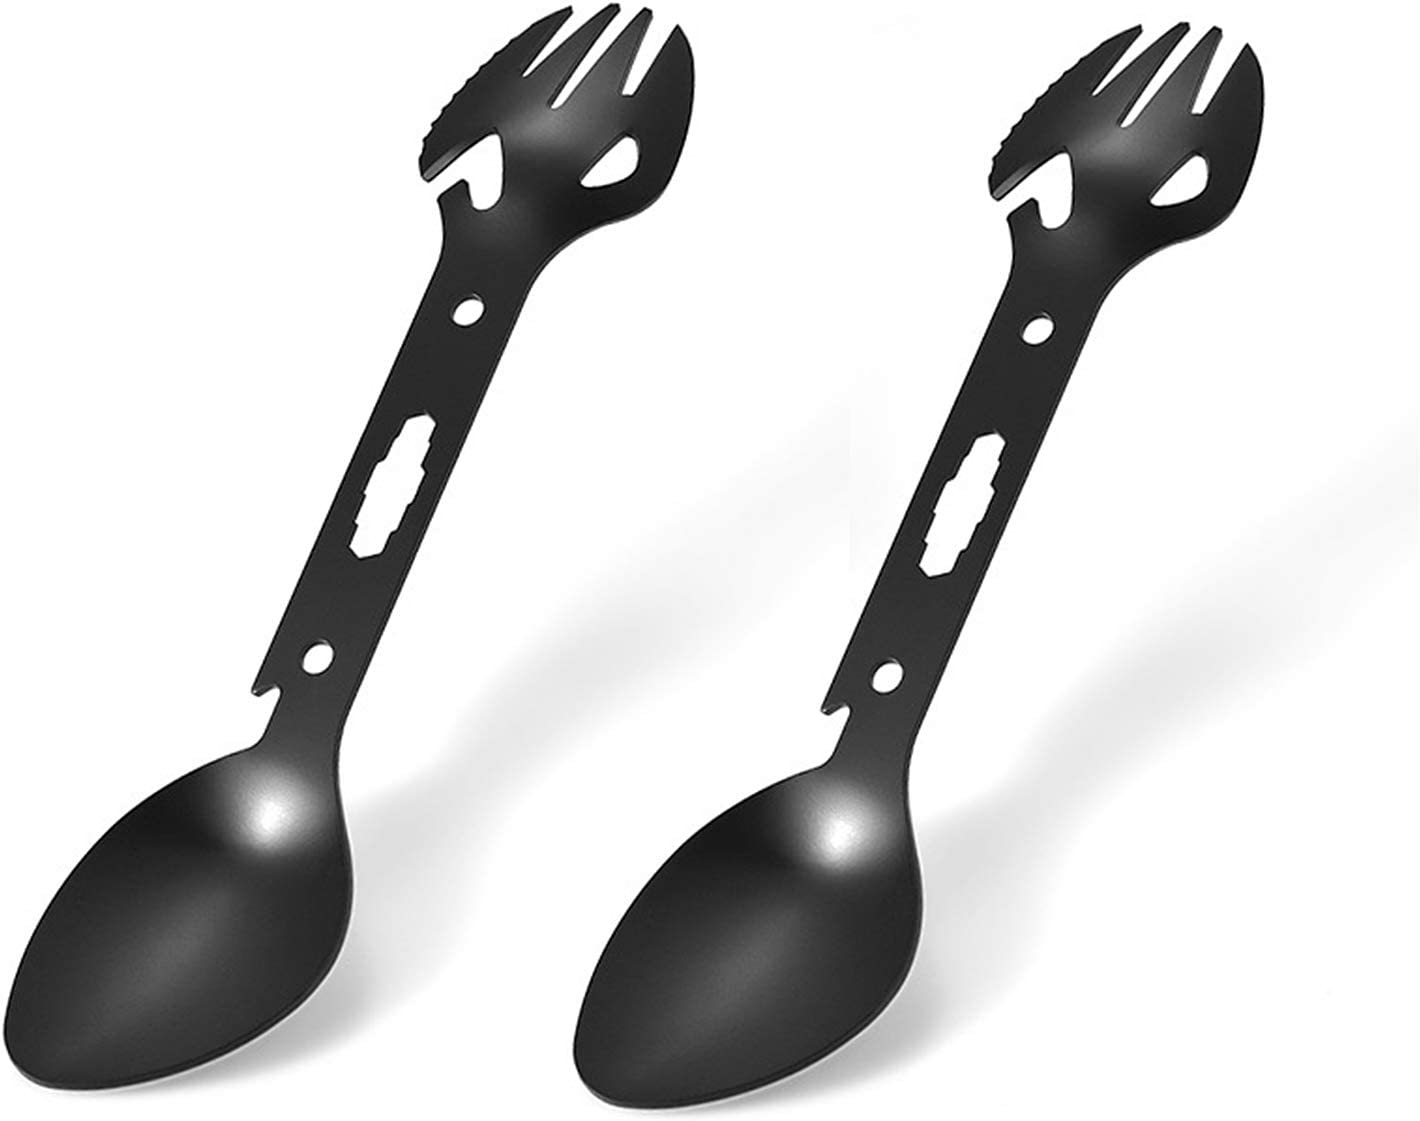 Details about  /Titanium Spork Bottle Opener Outdoors Camping Travel Picnic Hiking Use Accessory